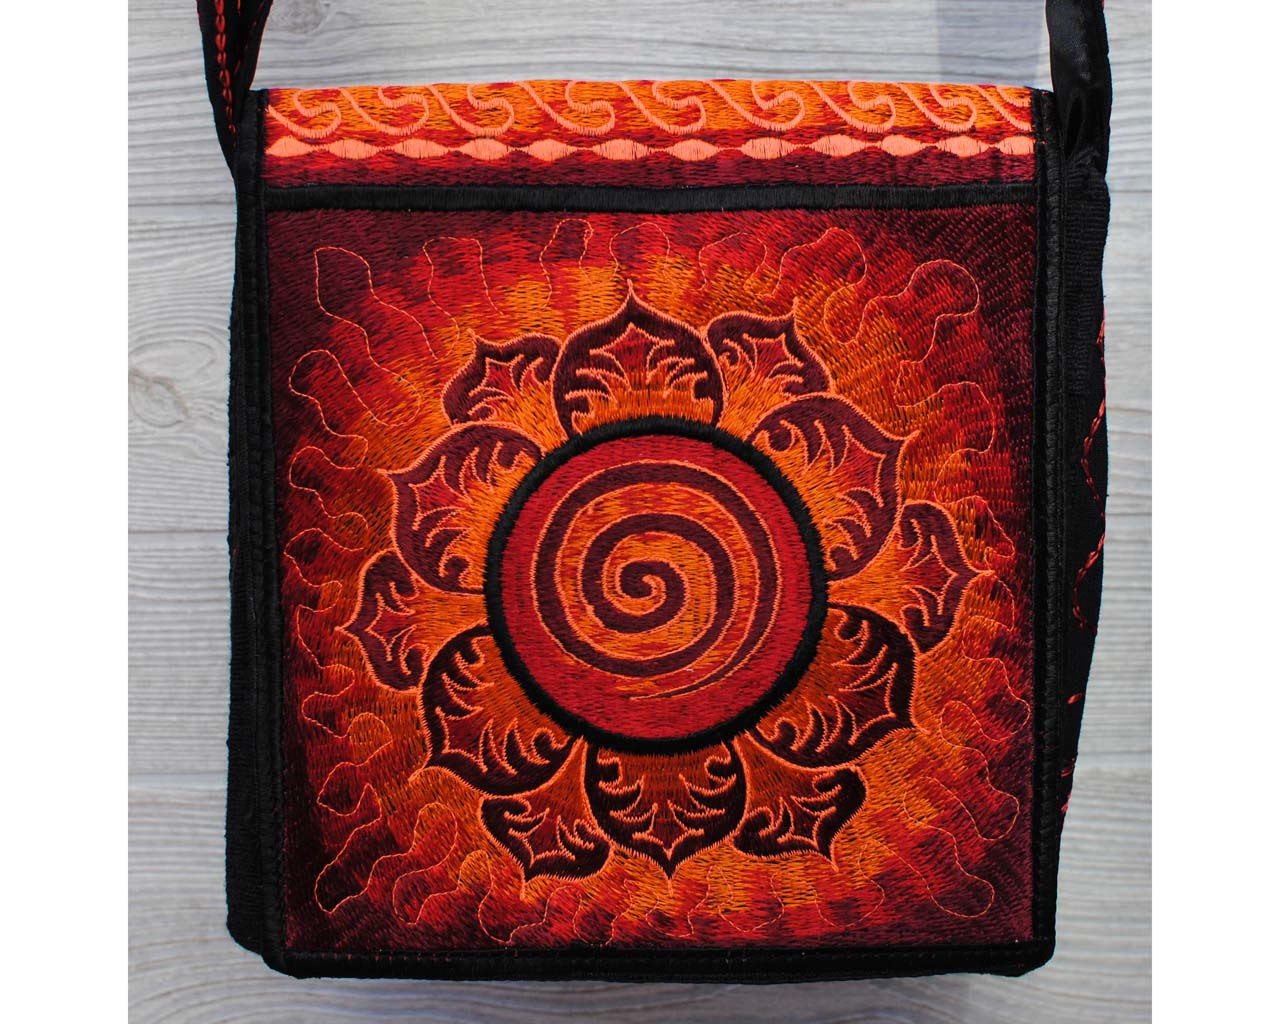 Boho Passport Crossbody Embroidery Bag - Red Orange / Swirl Flower Sun Rays